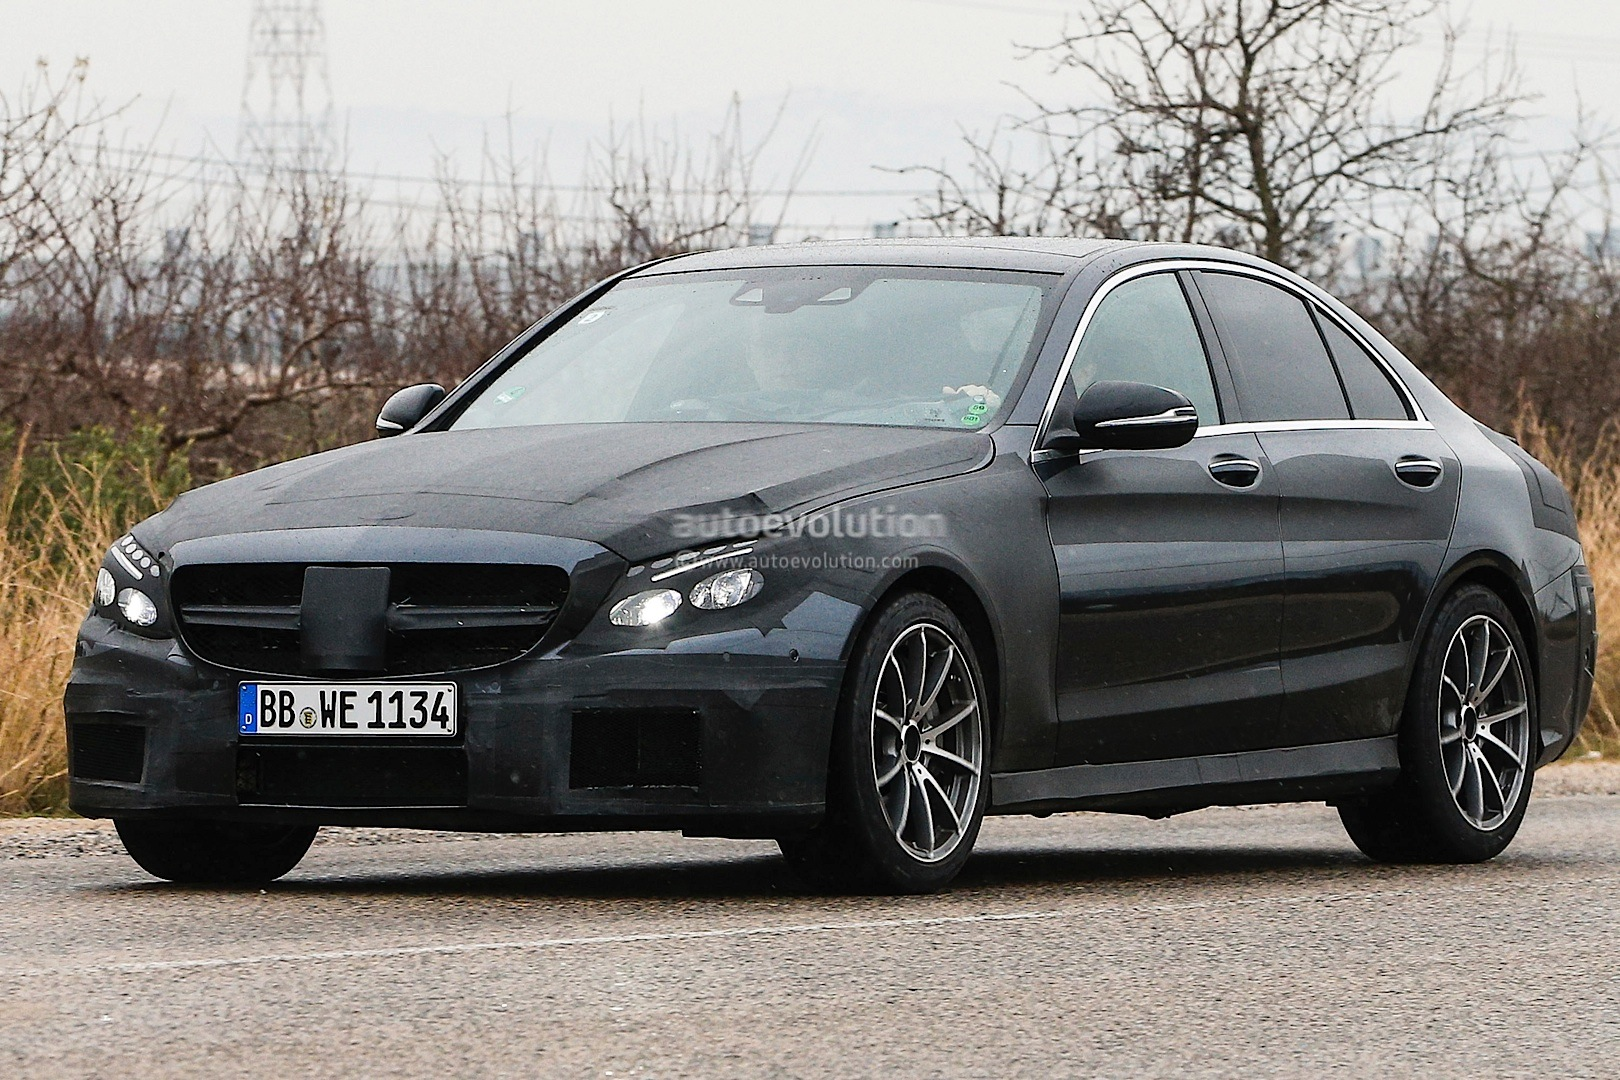 2015 c 63 amg w205 spied in spain photo gallery for Mercedes benz espana